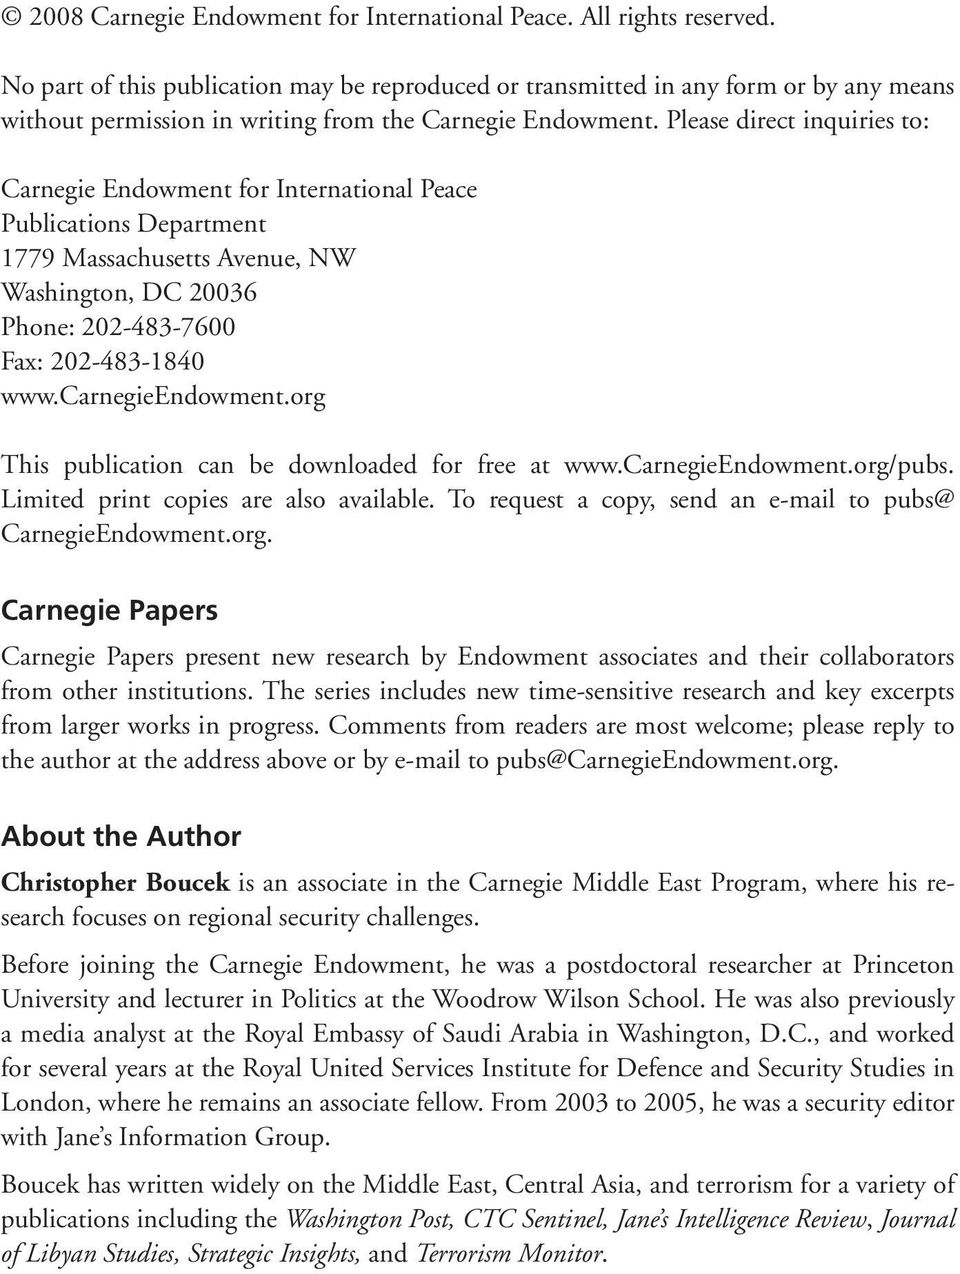 Please direct inquiries to: Carnegie Endowment for International Peace Publications Department 1779 Massachusetts Avenue, NW Washington, DC 20036 Phone: 202-483-7600 Fax: 202-483-1840 www.